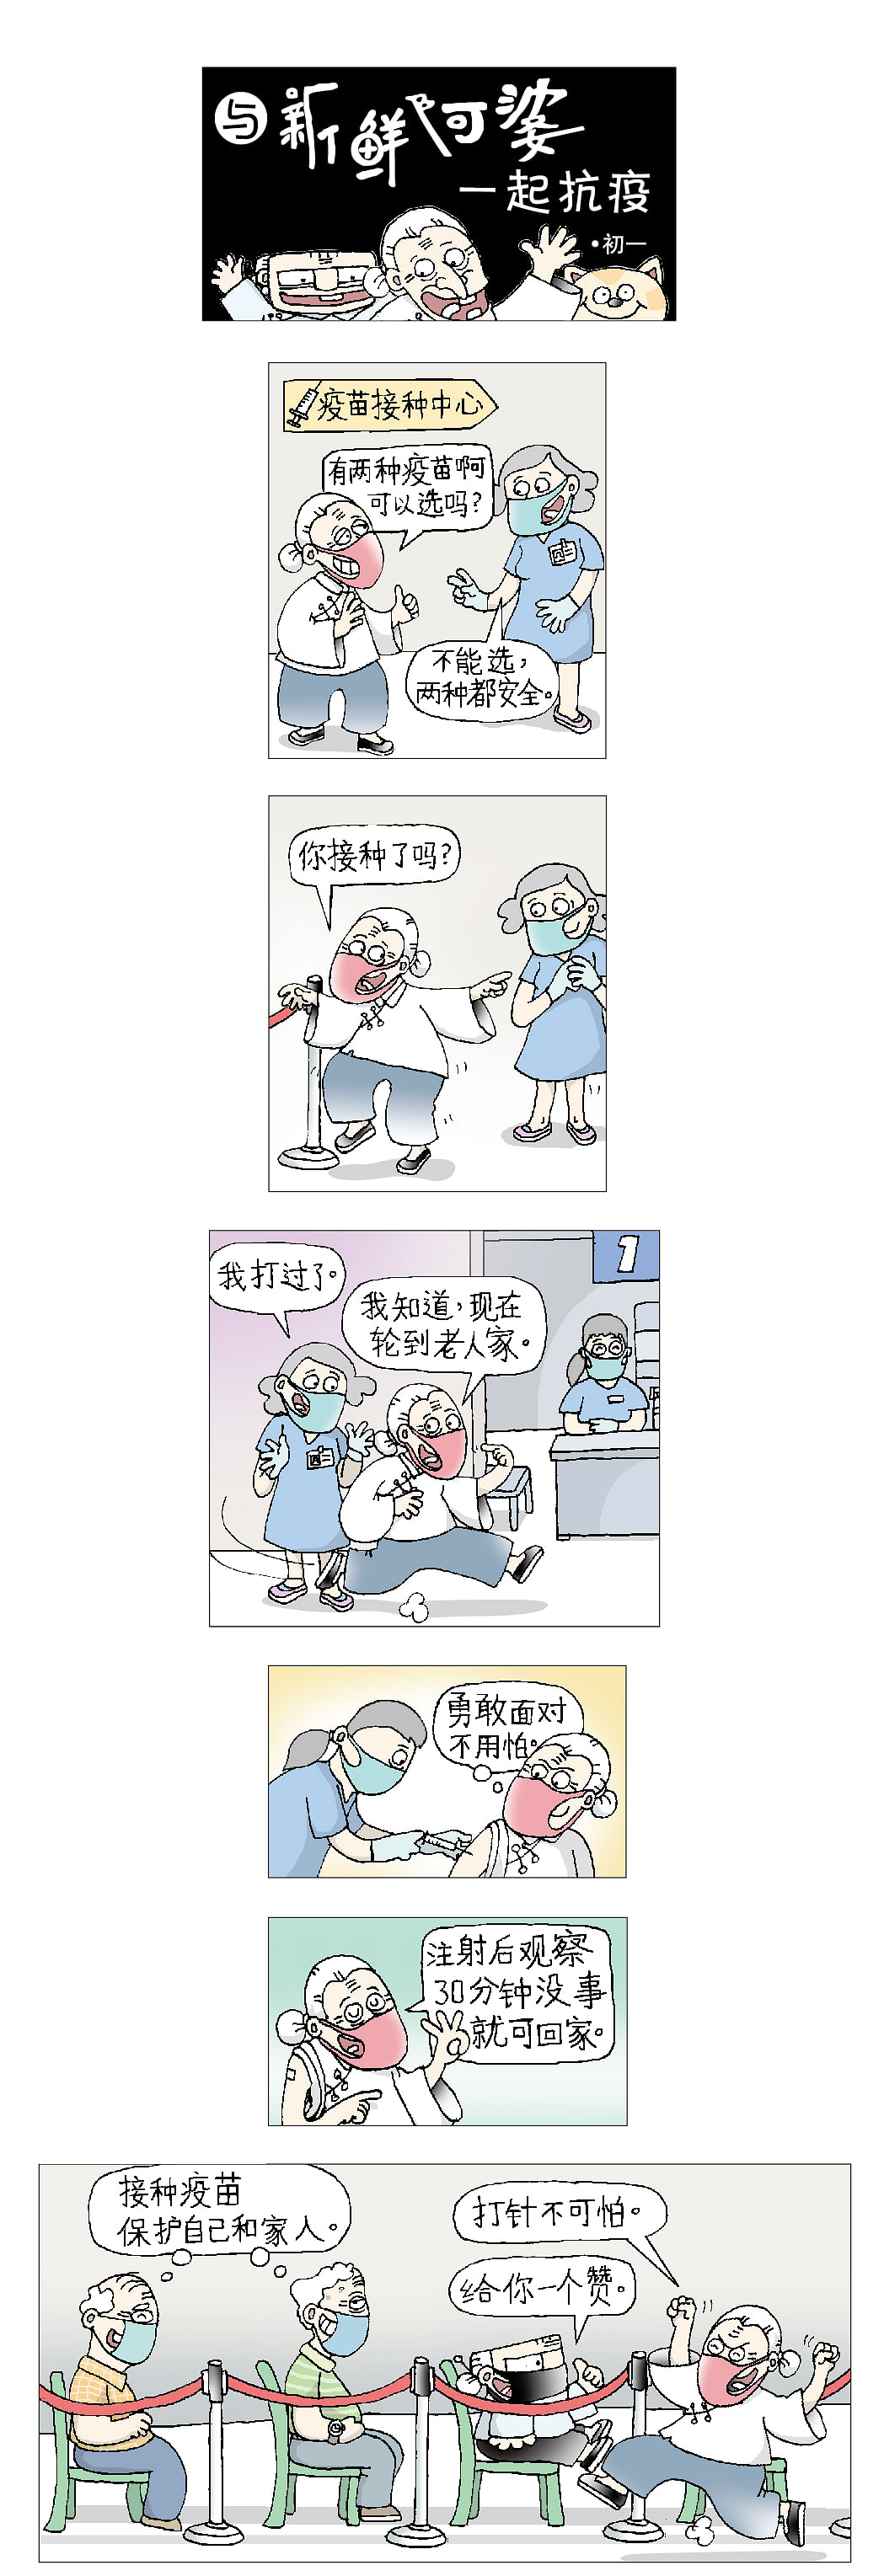 20210307_zb_vaccine-comic_full.jpg